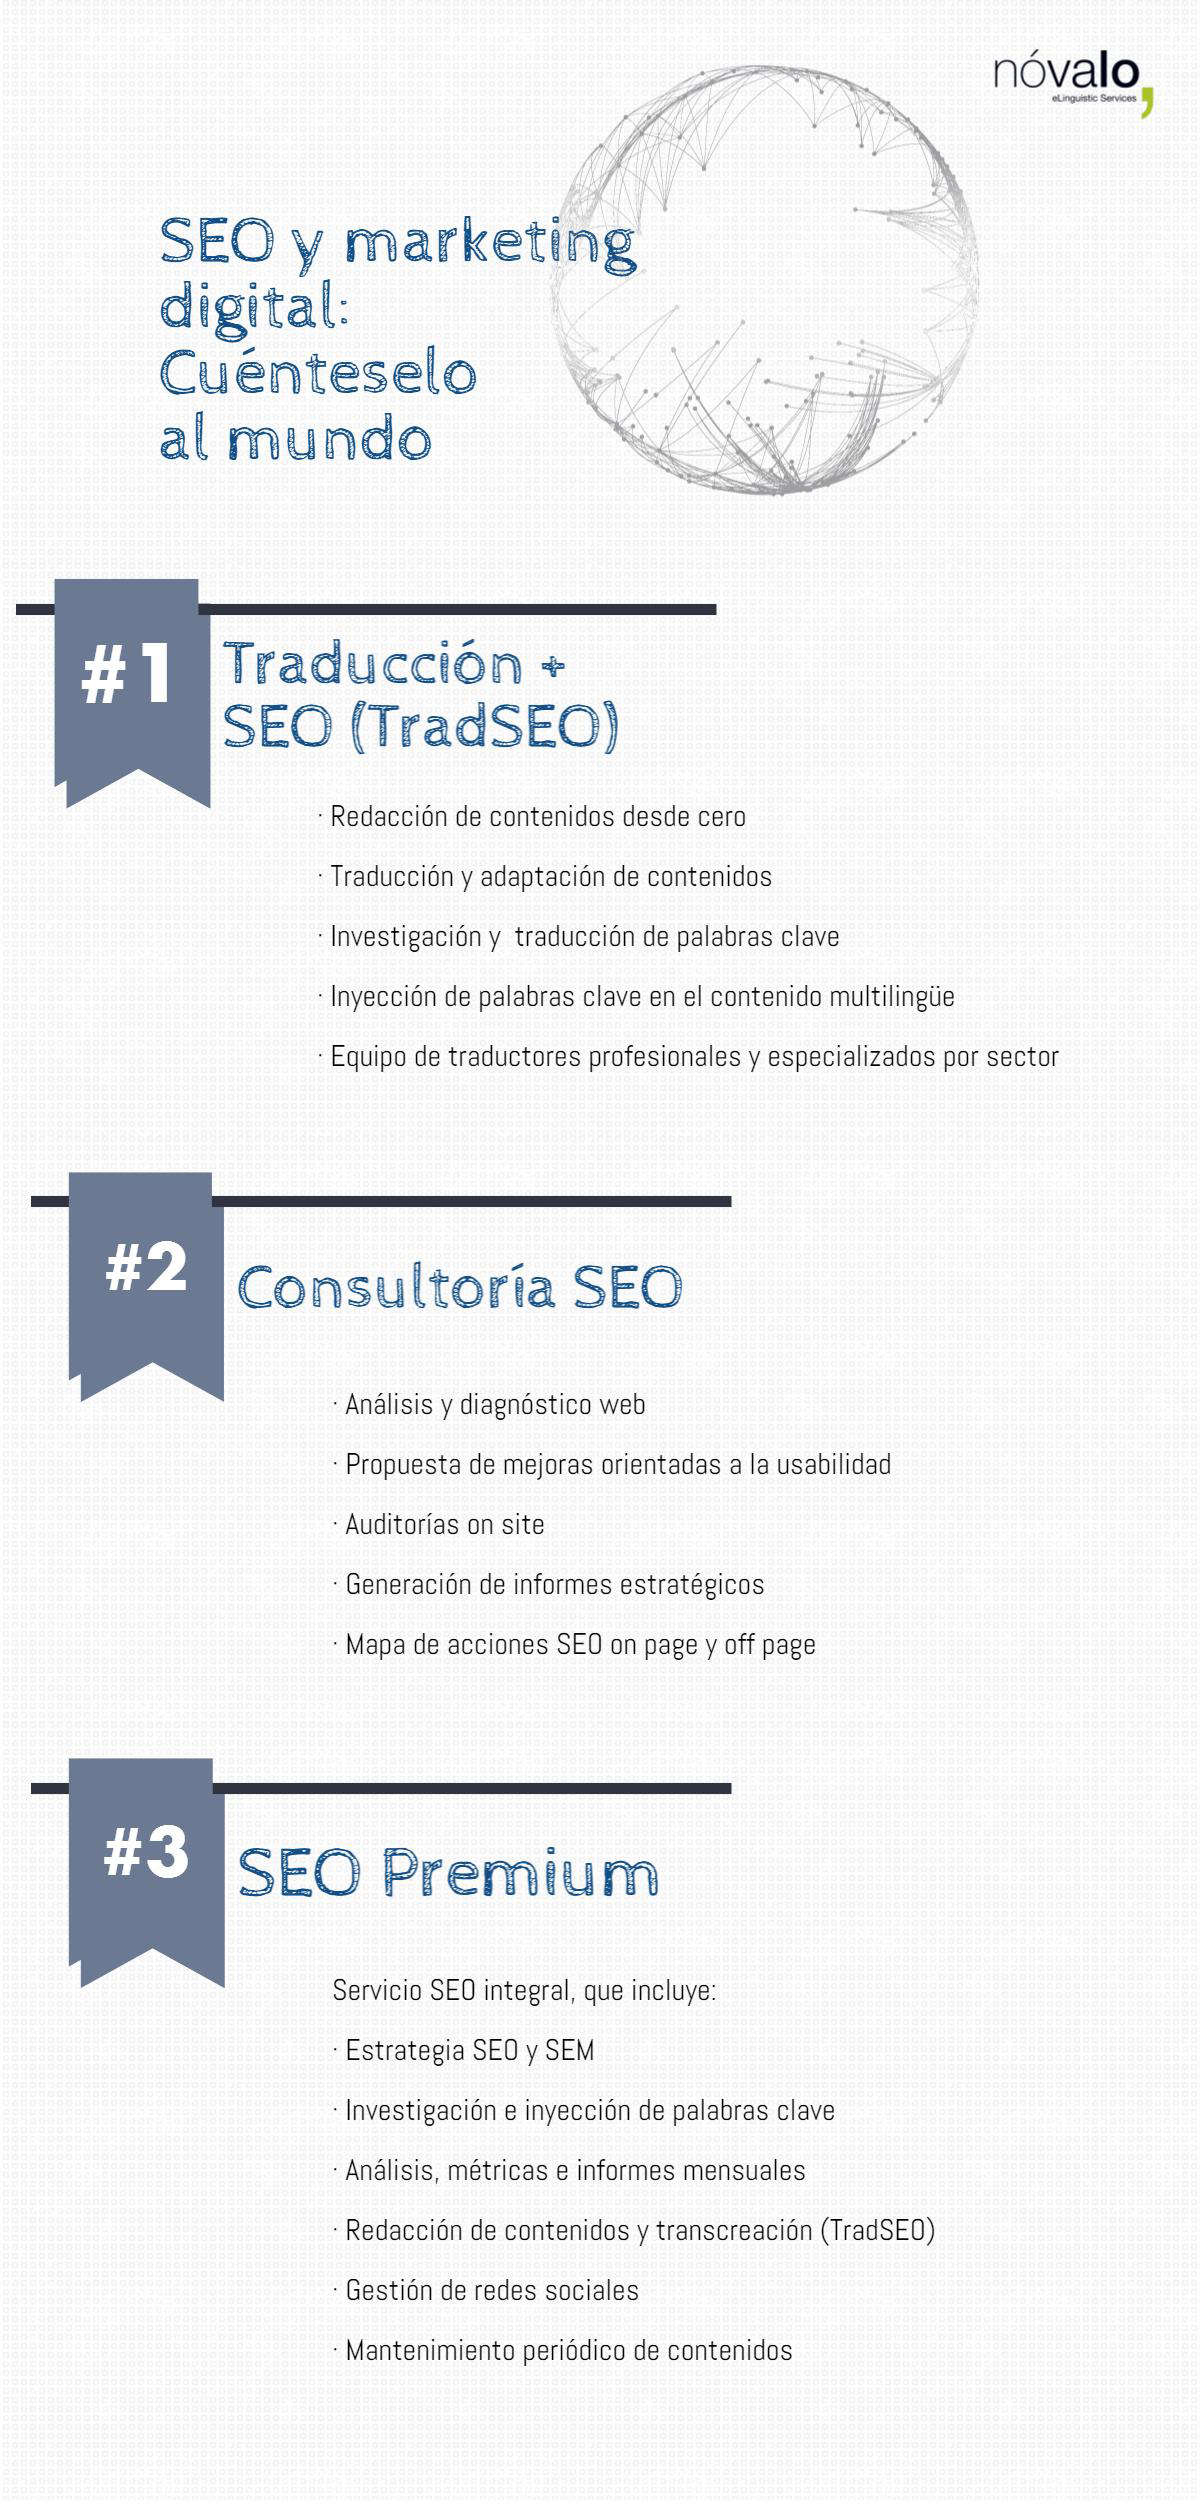 Novalo agencia de traduccion, marketing digital y SEO